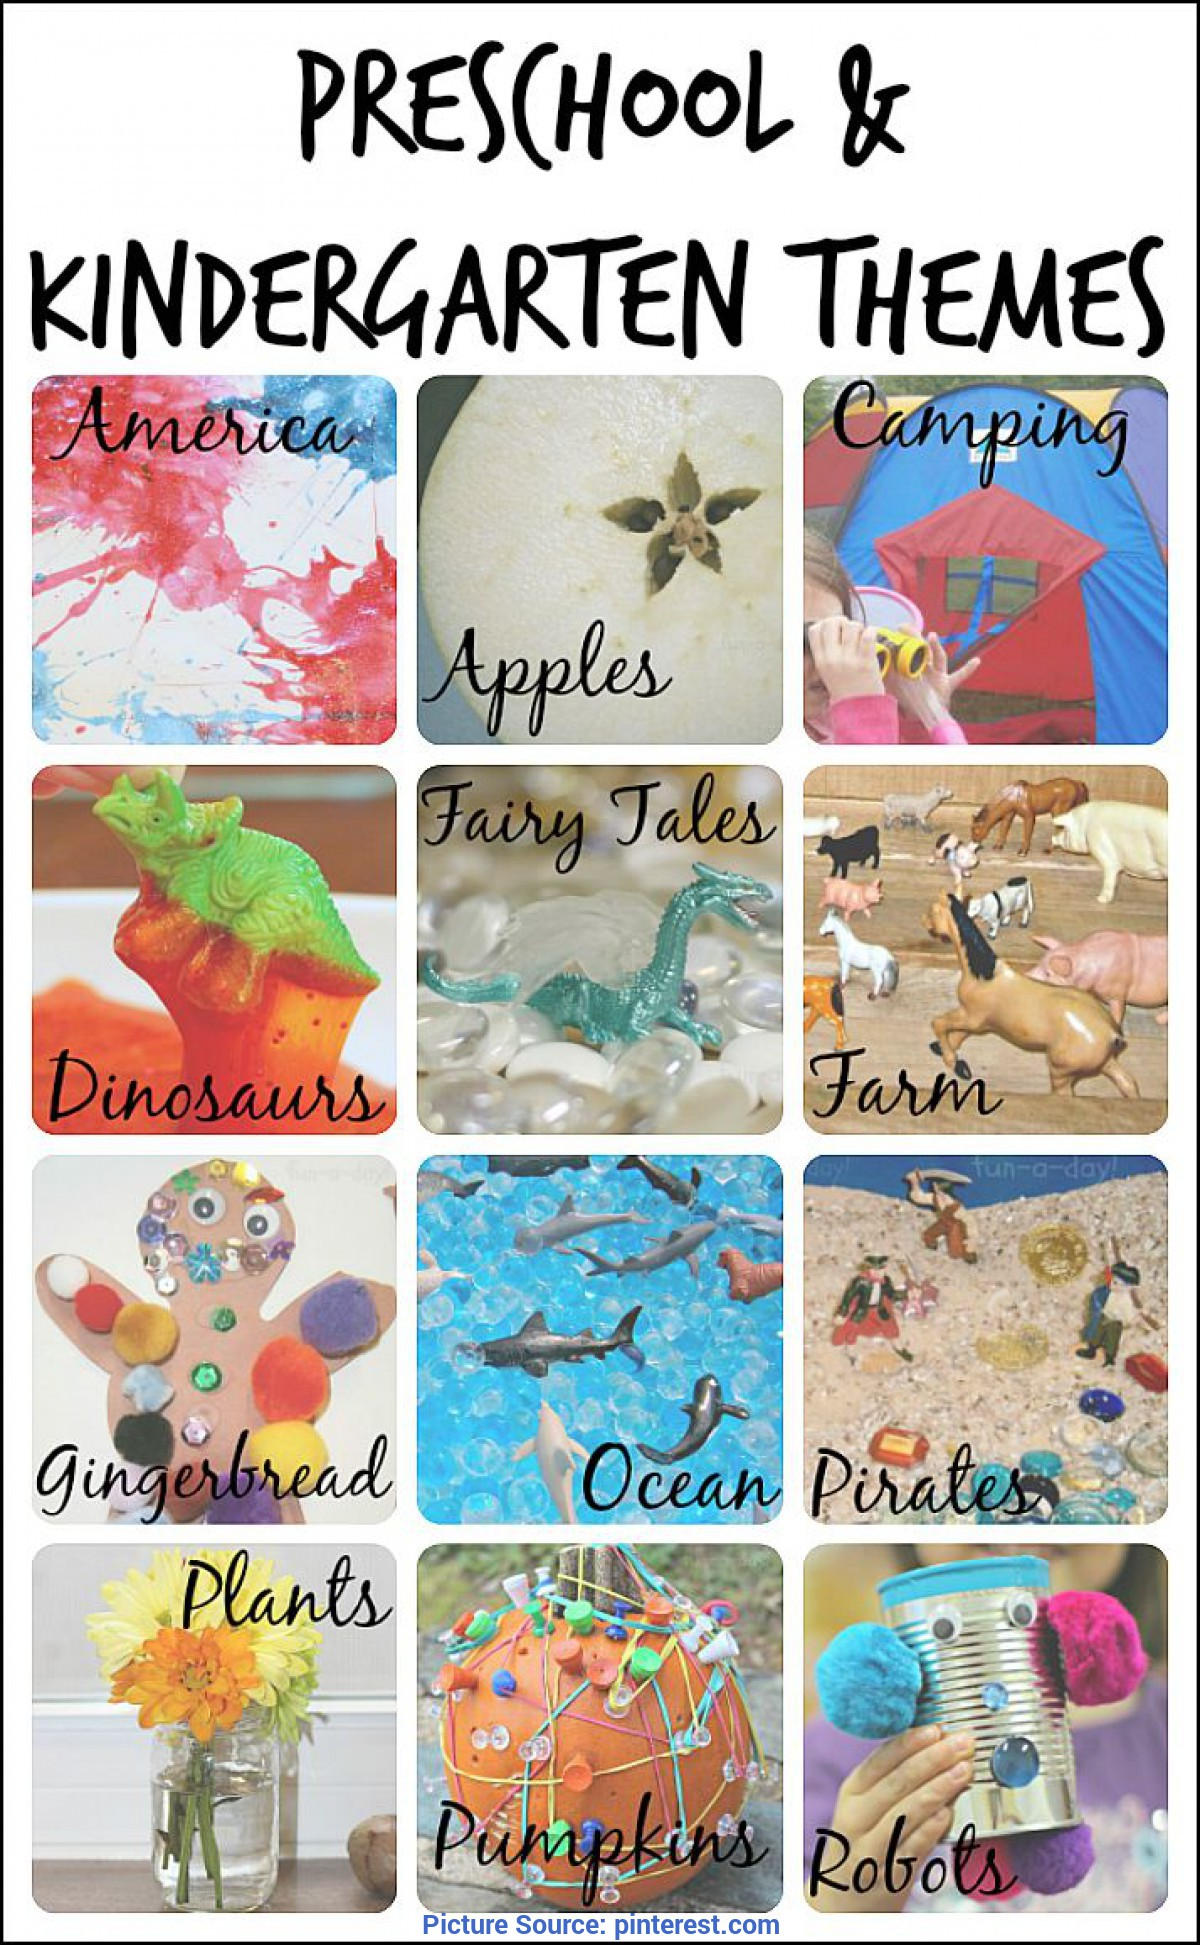 Newest Themes For Kindergarten Lesson Plans Best 25+ Kindergarten Themes Ideas On Pinterest   Preschool Theme